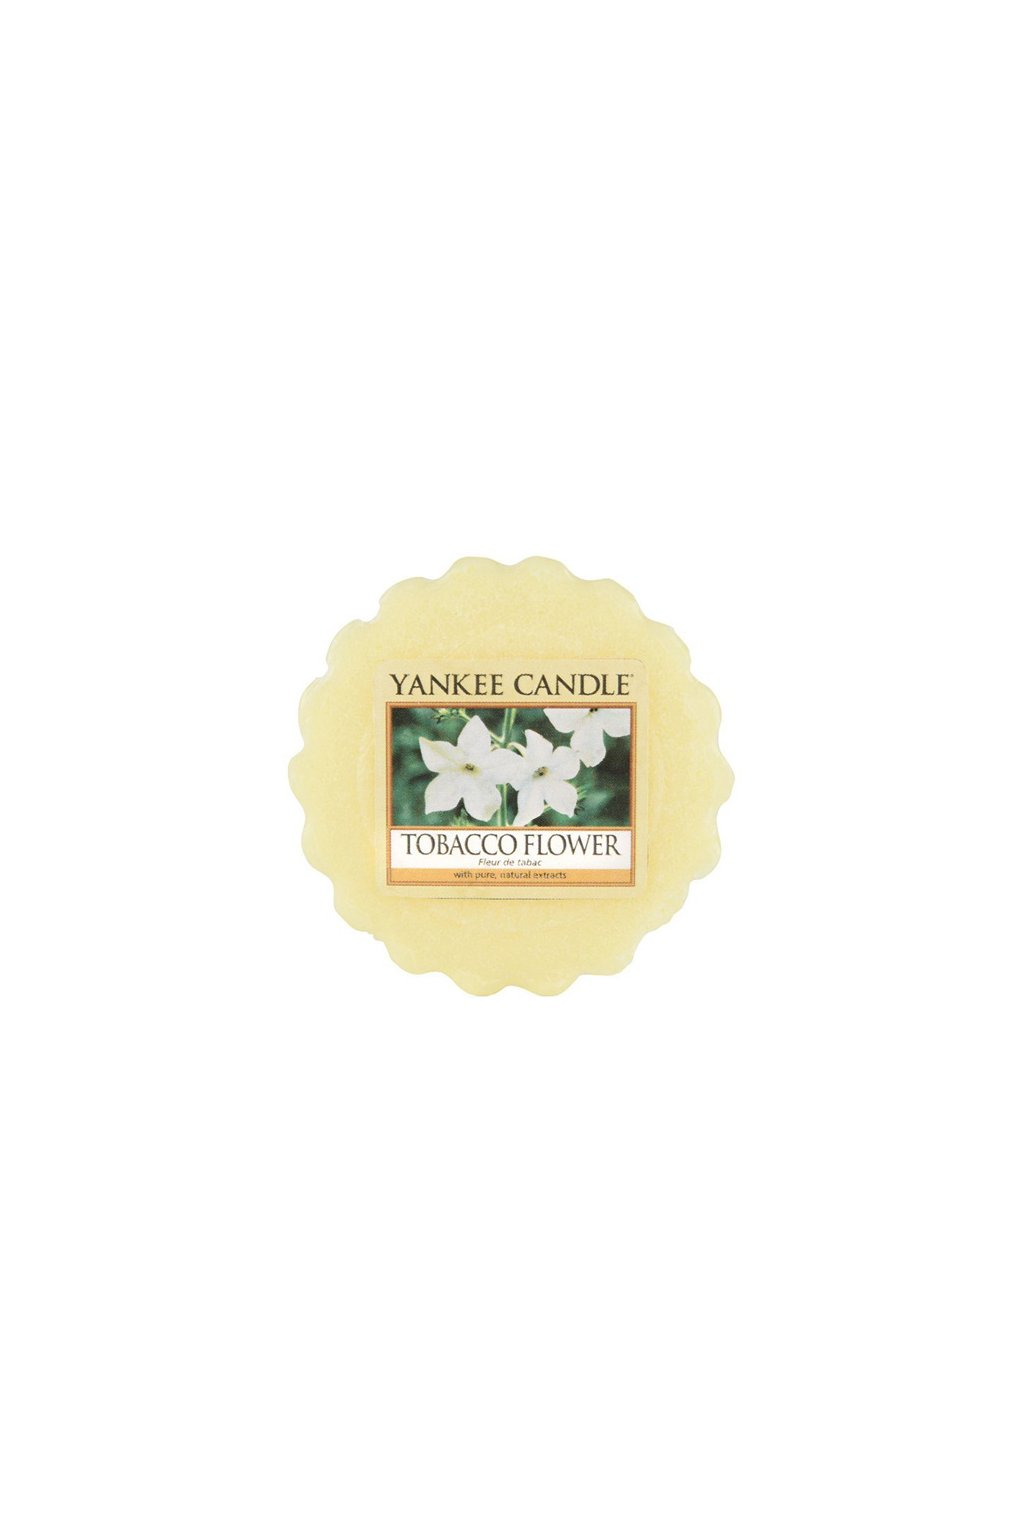 Yankee Candle Tabacco Flower 22g